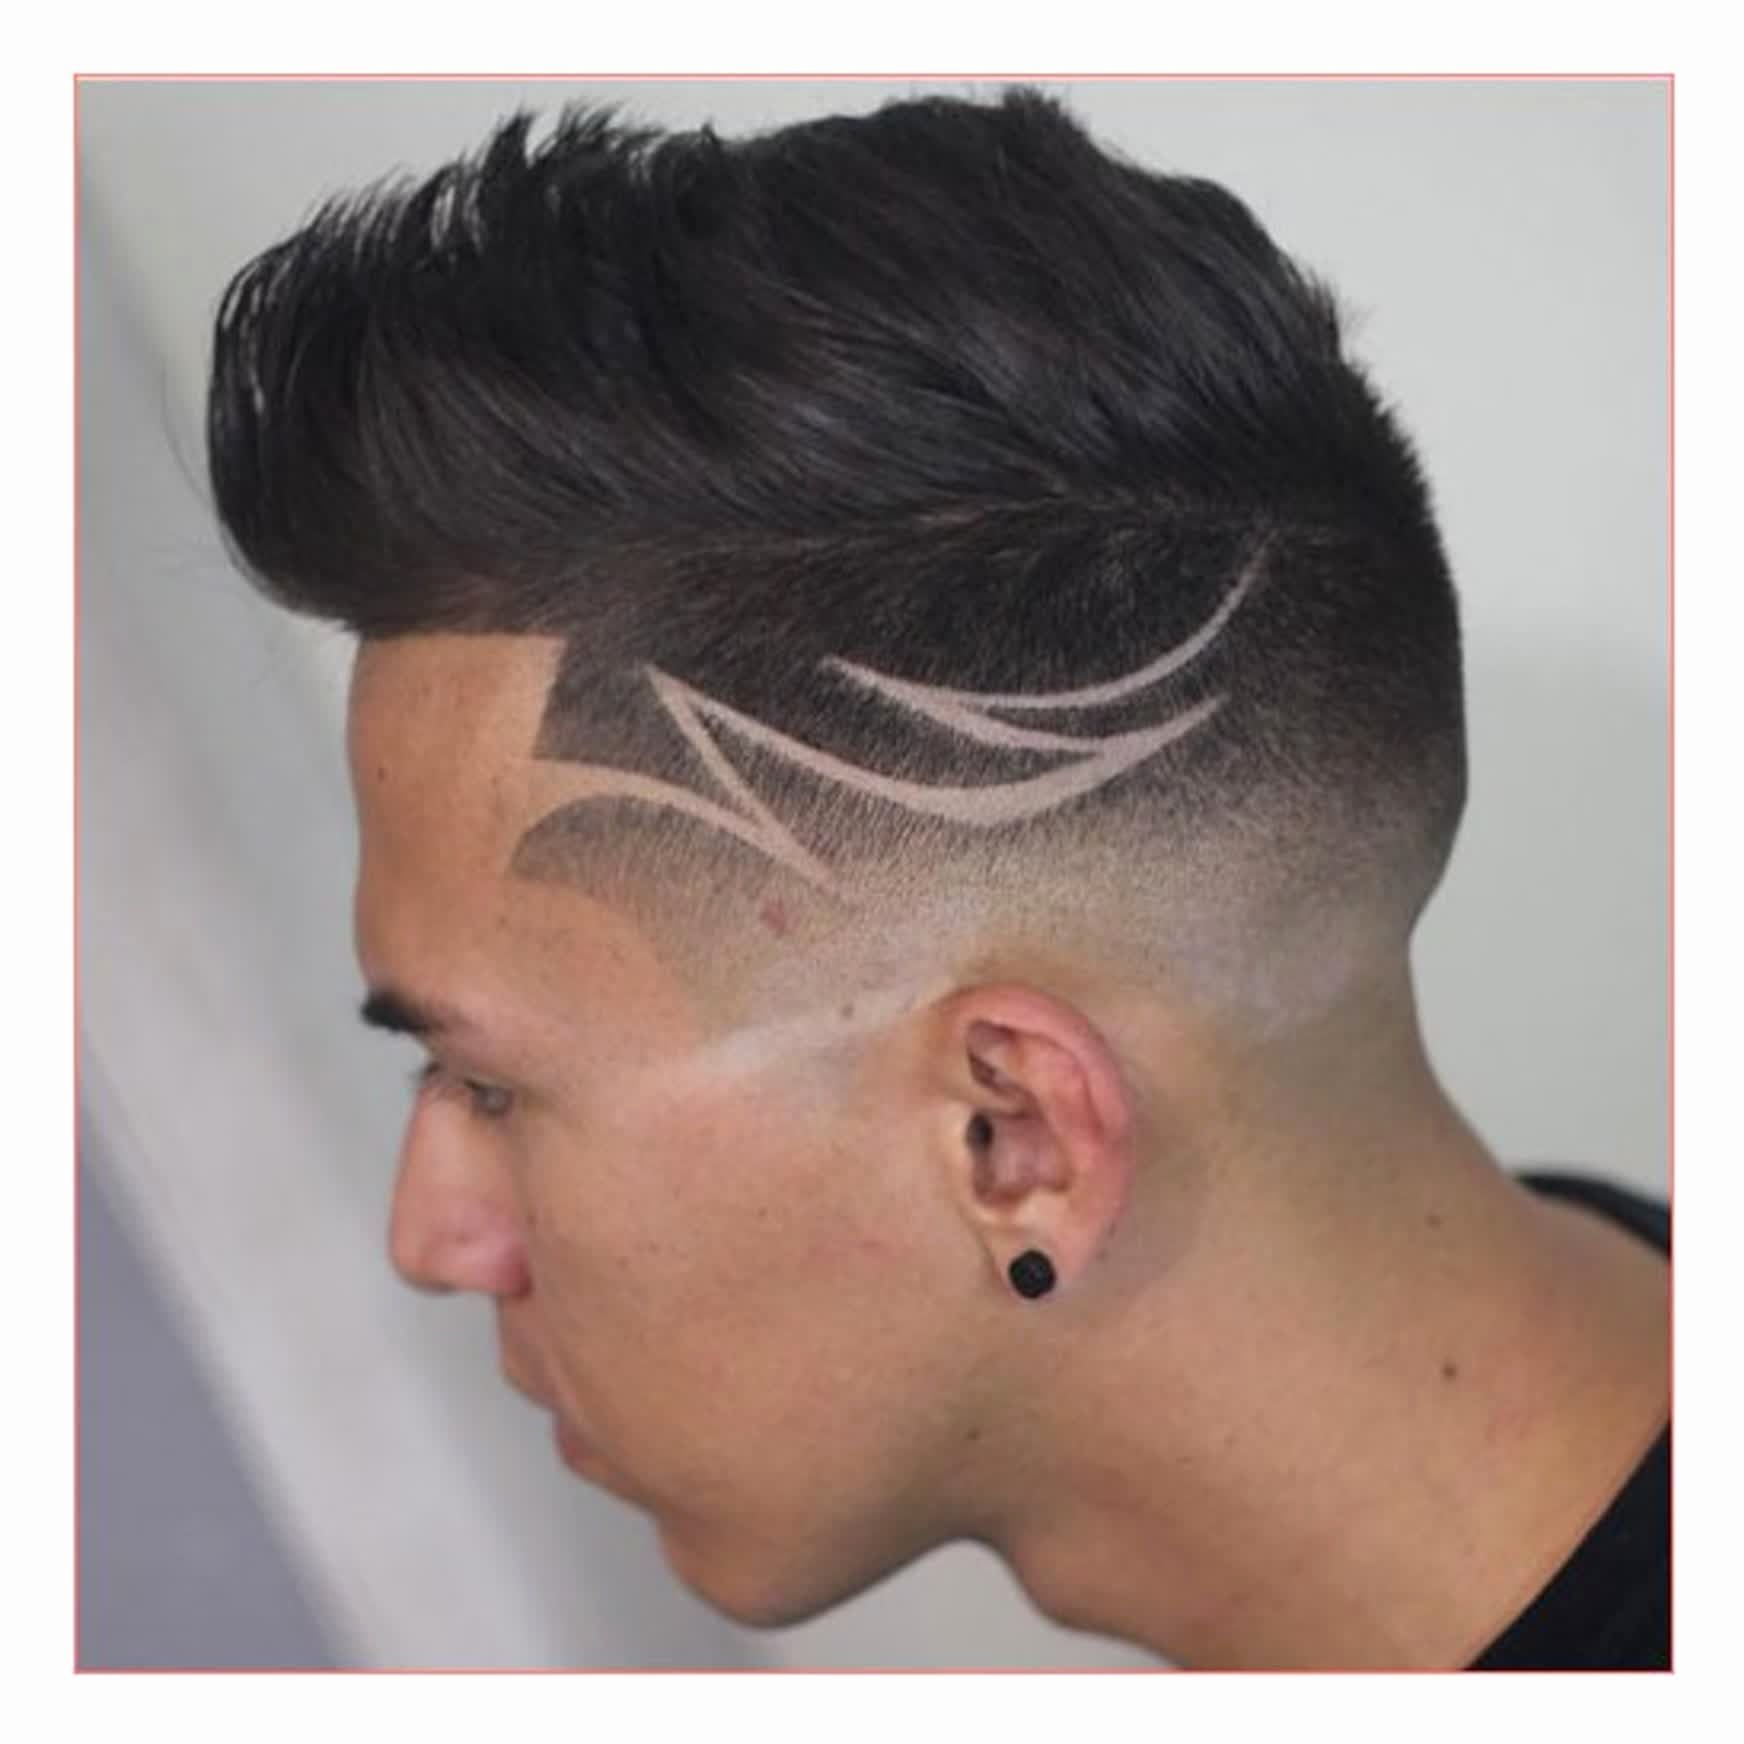 Hairstyles For Men Tribal Faded Hair Hair Tattoo Designs Shaved Hair Designs